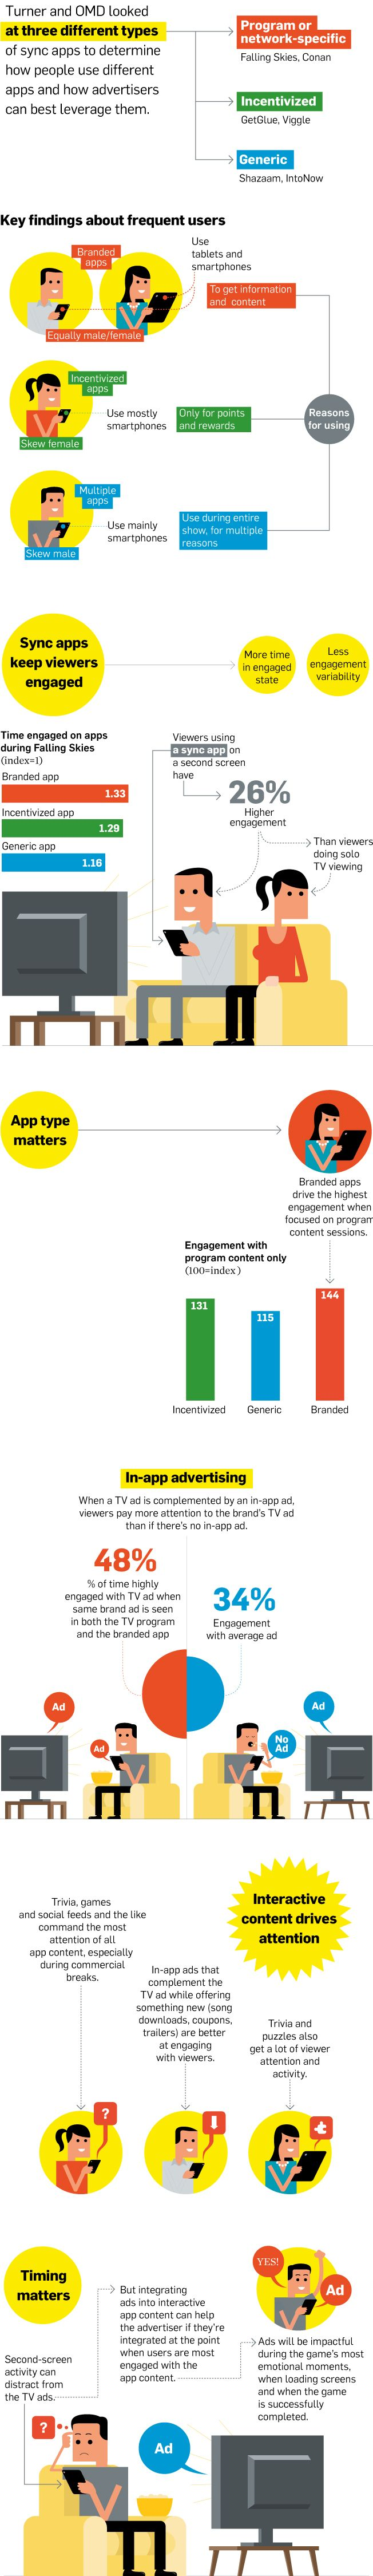 Types of Second-Screen Apps That Keep Users Engaged | Adweek